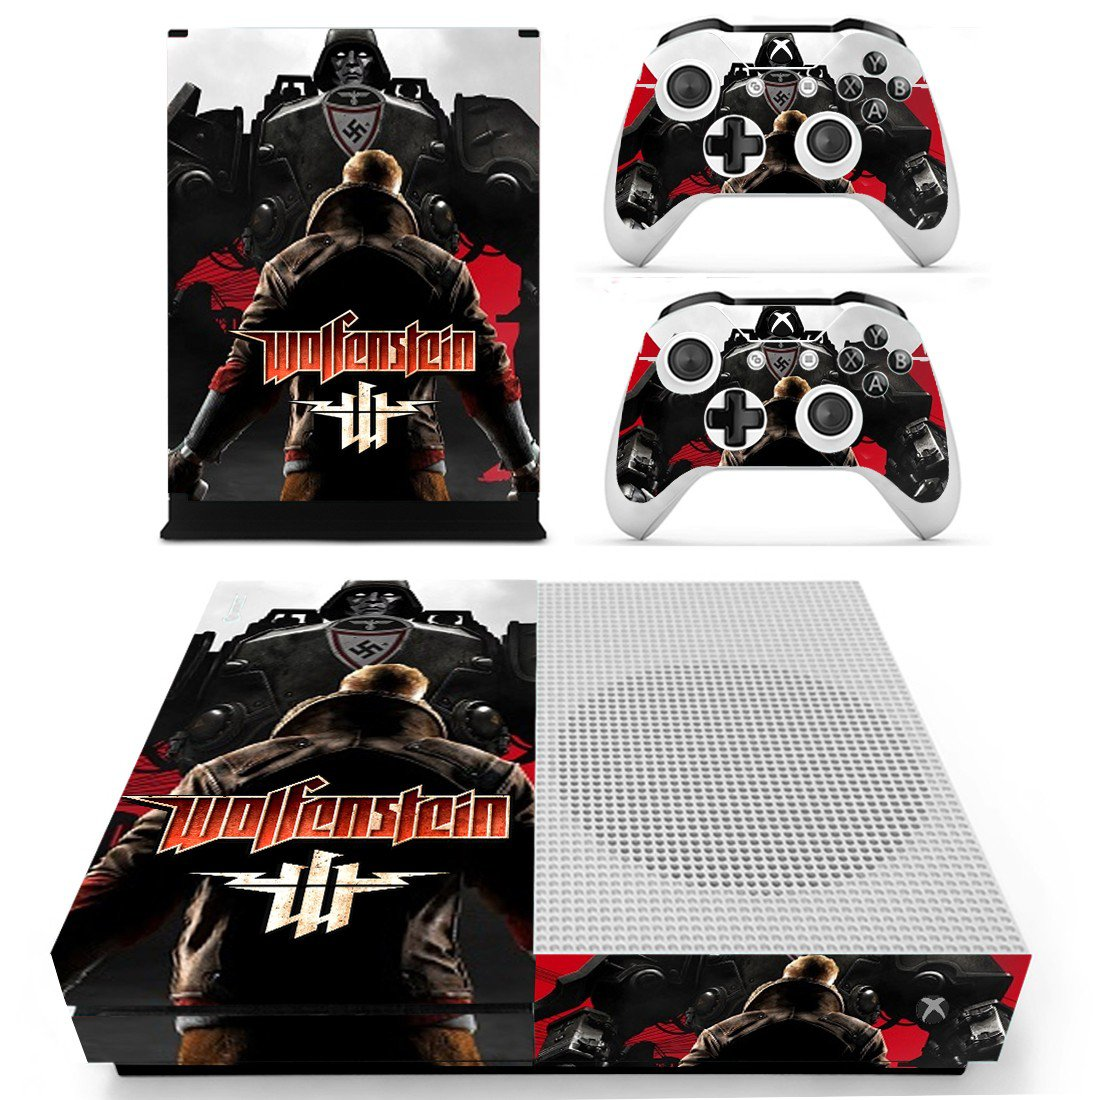 Wolfenstein decal skin sticker for Xbox One S console and controllers